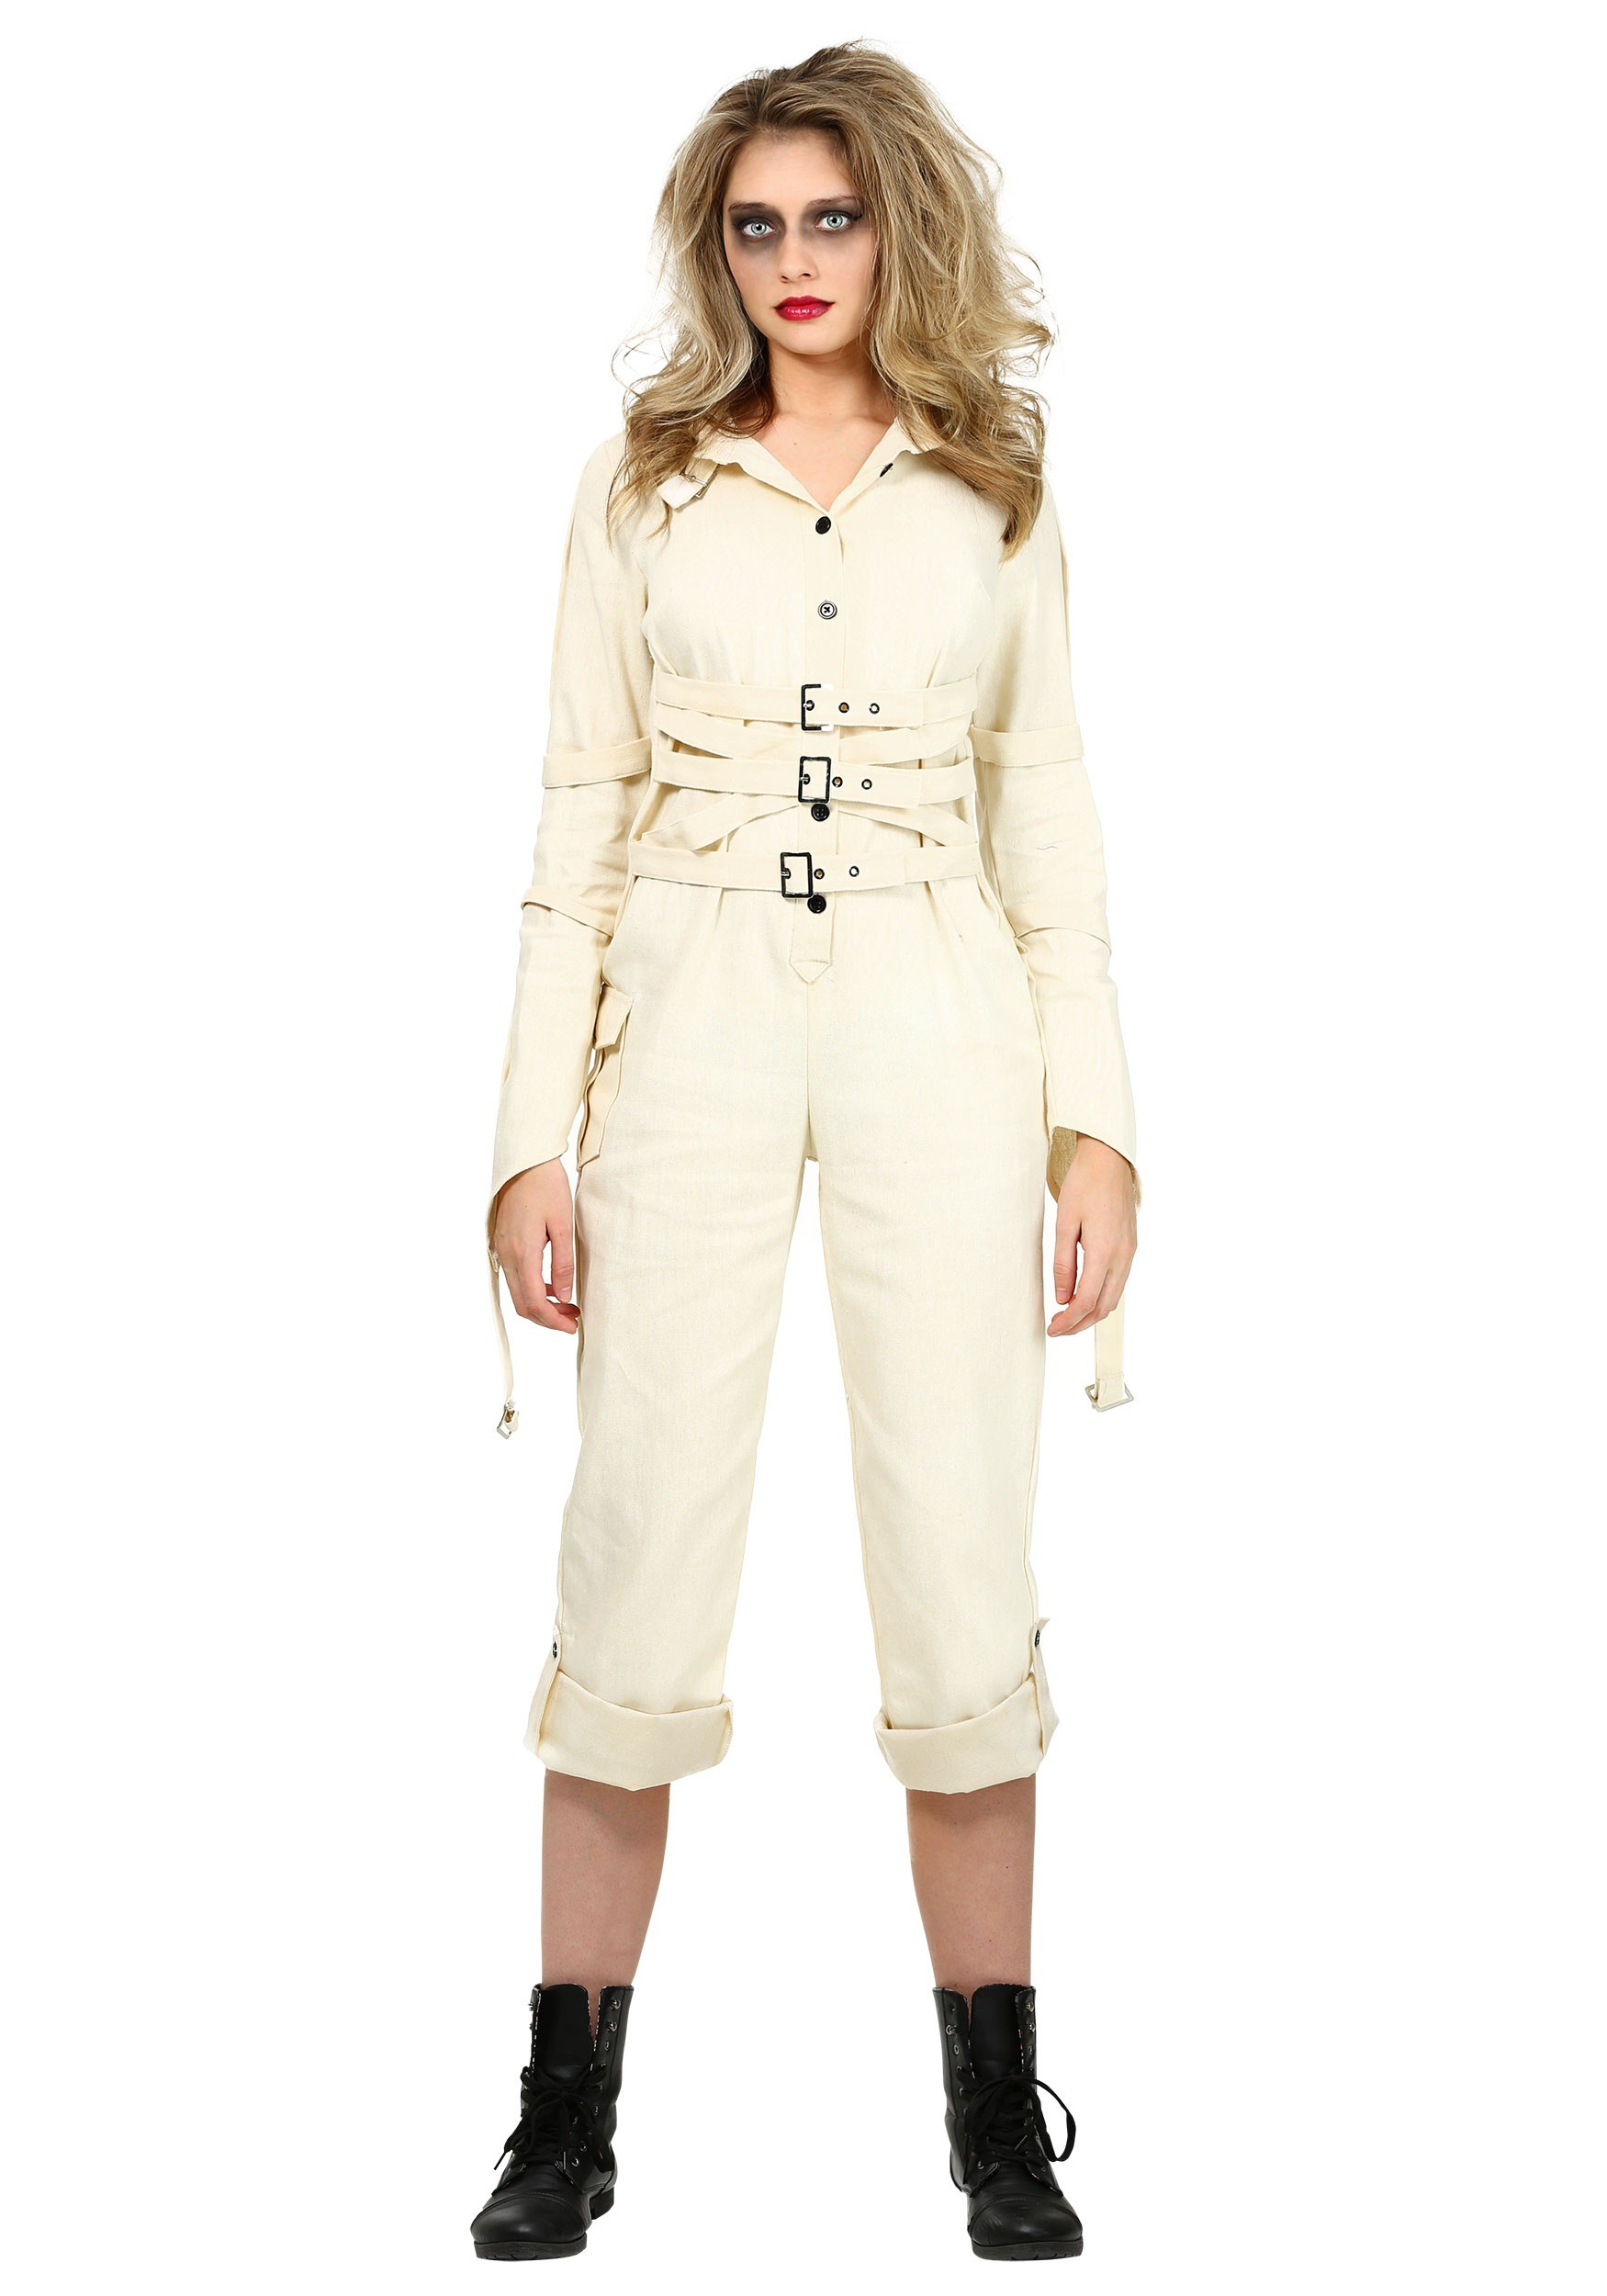 Women S Insane Asylum Costume